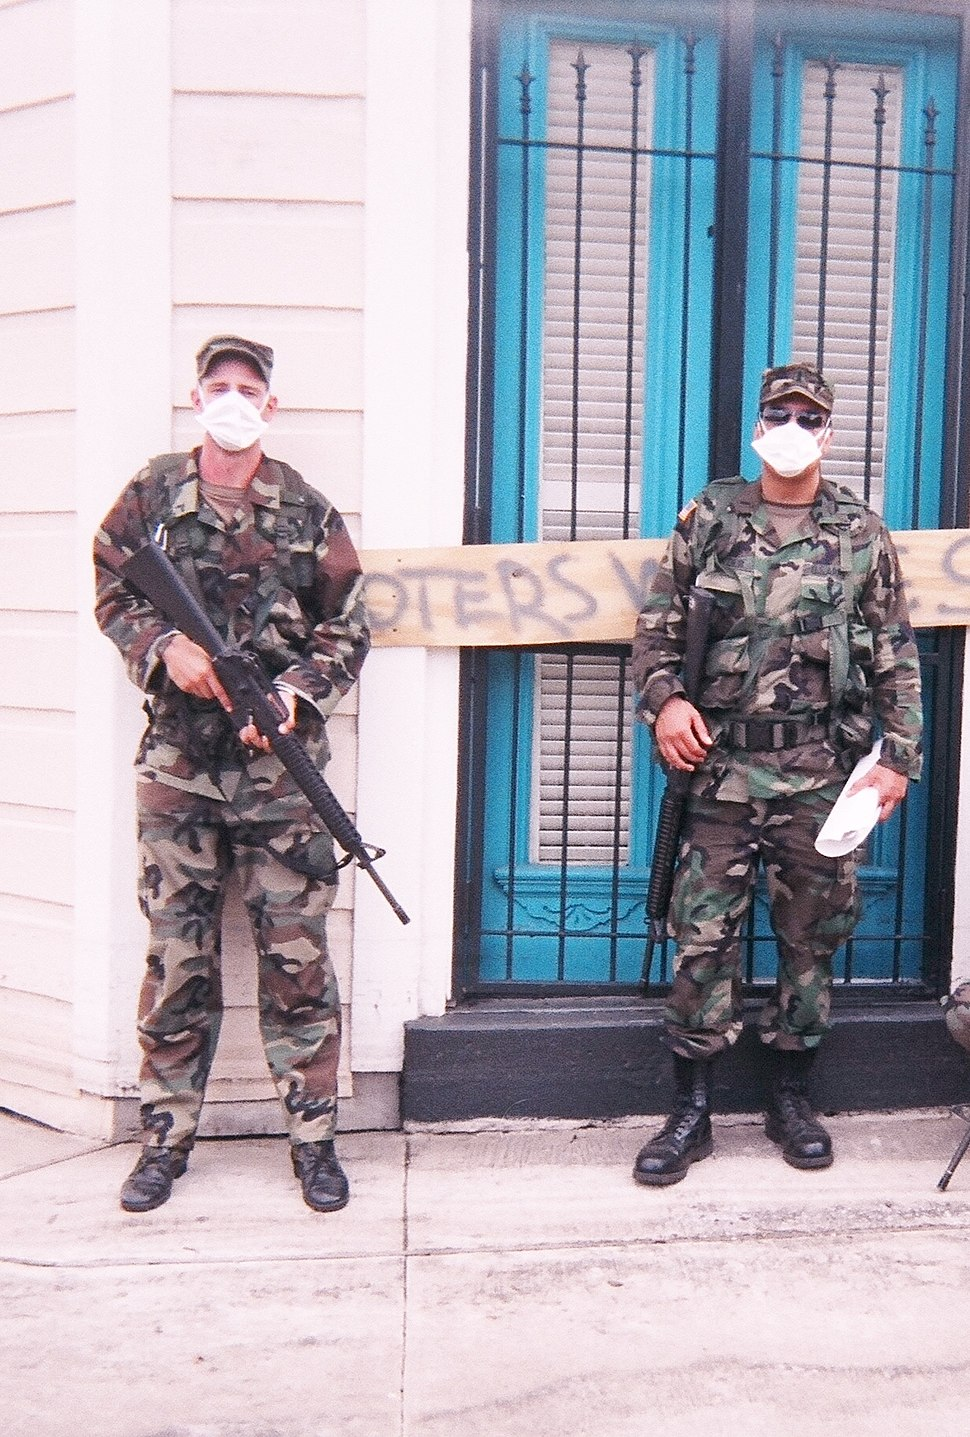 Patrolling an area that was previously underwater in New Orleans September 2005